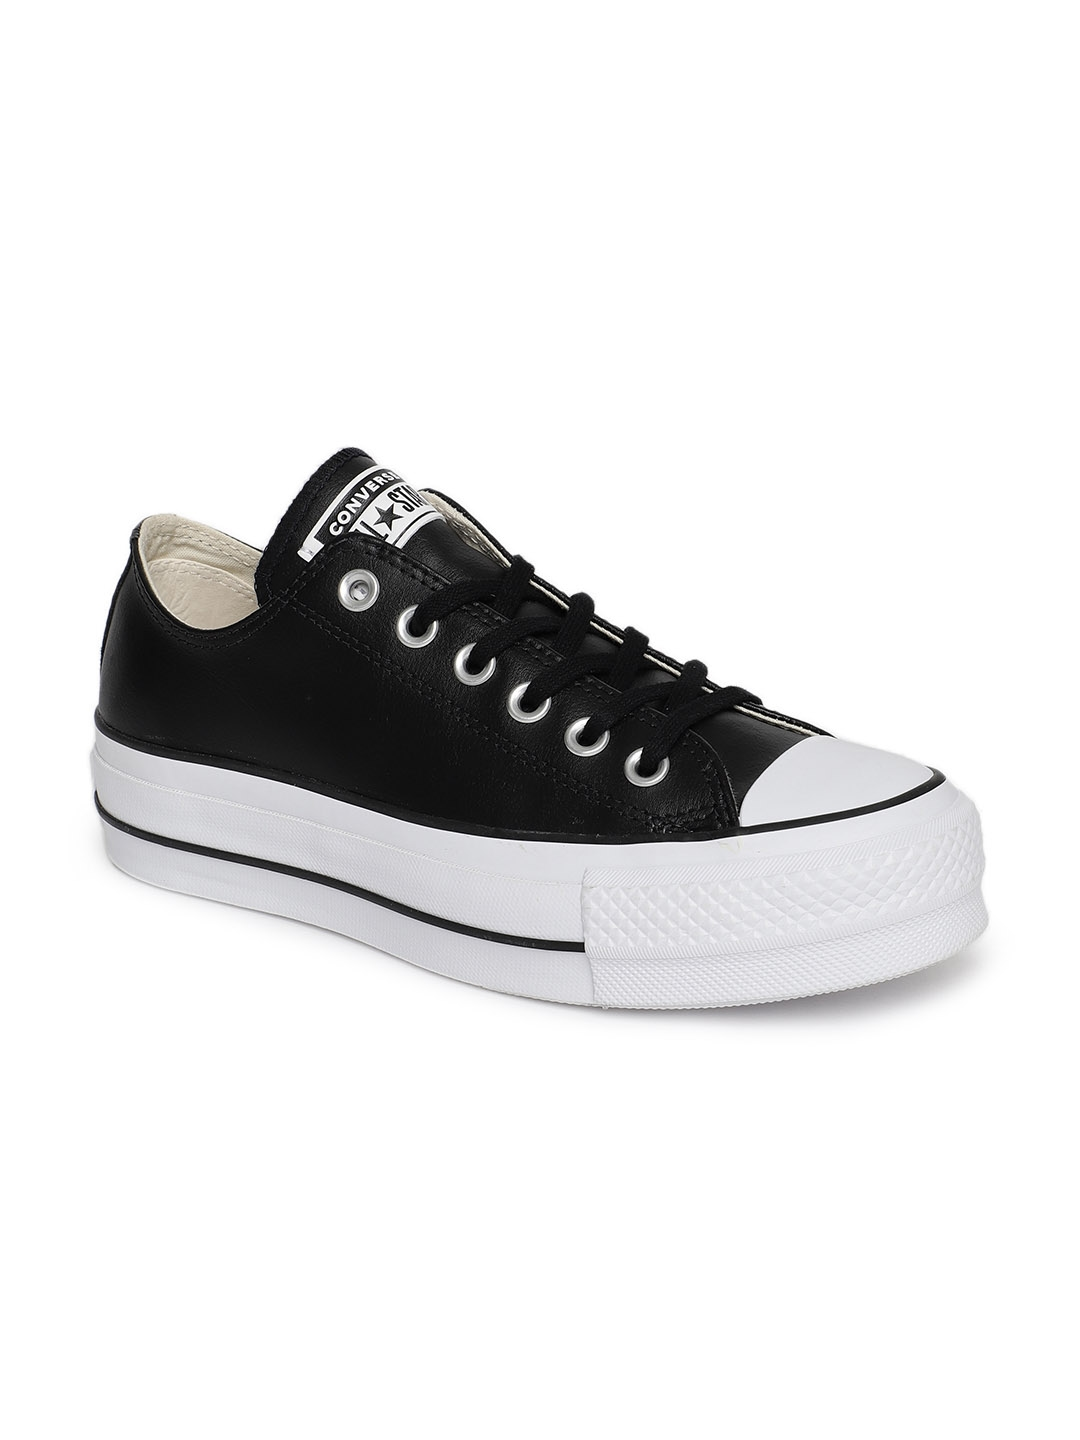 3ebecfc35338 Buy Converse Unisex Black 561681C Leather Sneakers - Casual Shoes ...